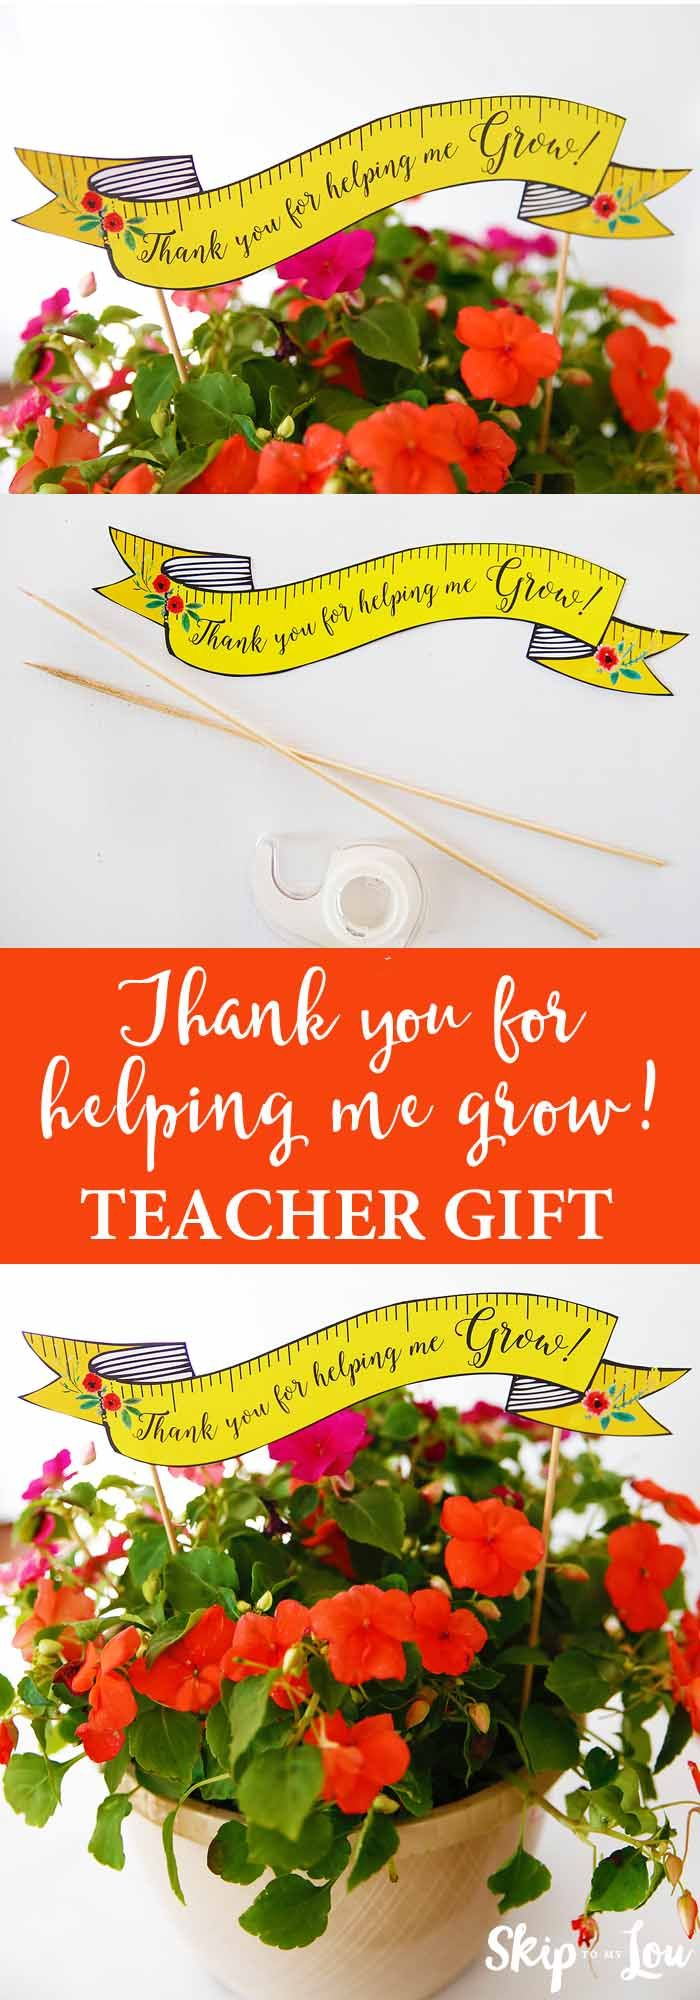 photograph regarding Thanks for Helping Me Grow Free Printable referred to as Do-it-yourself Items : Instructor appreciation present notion! No cost printable